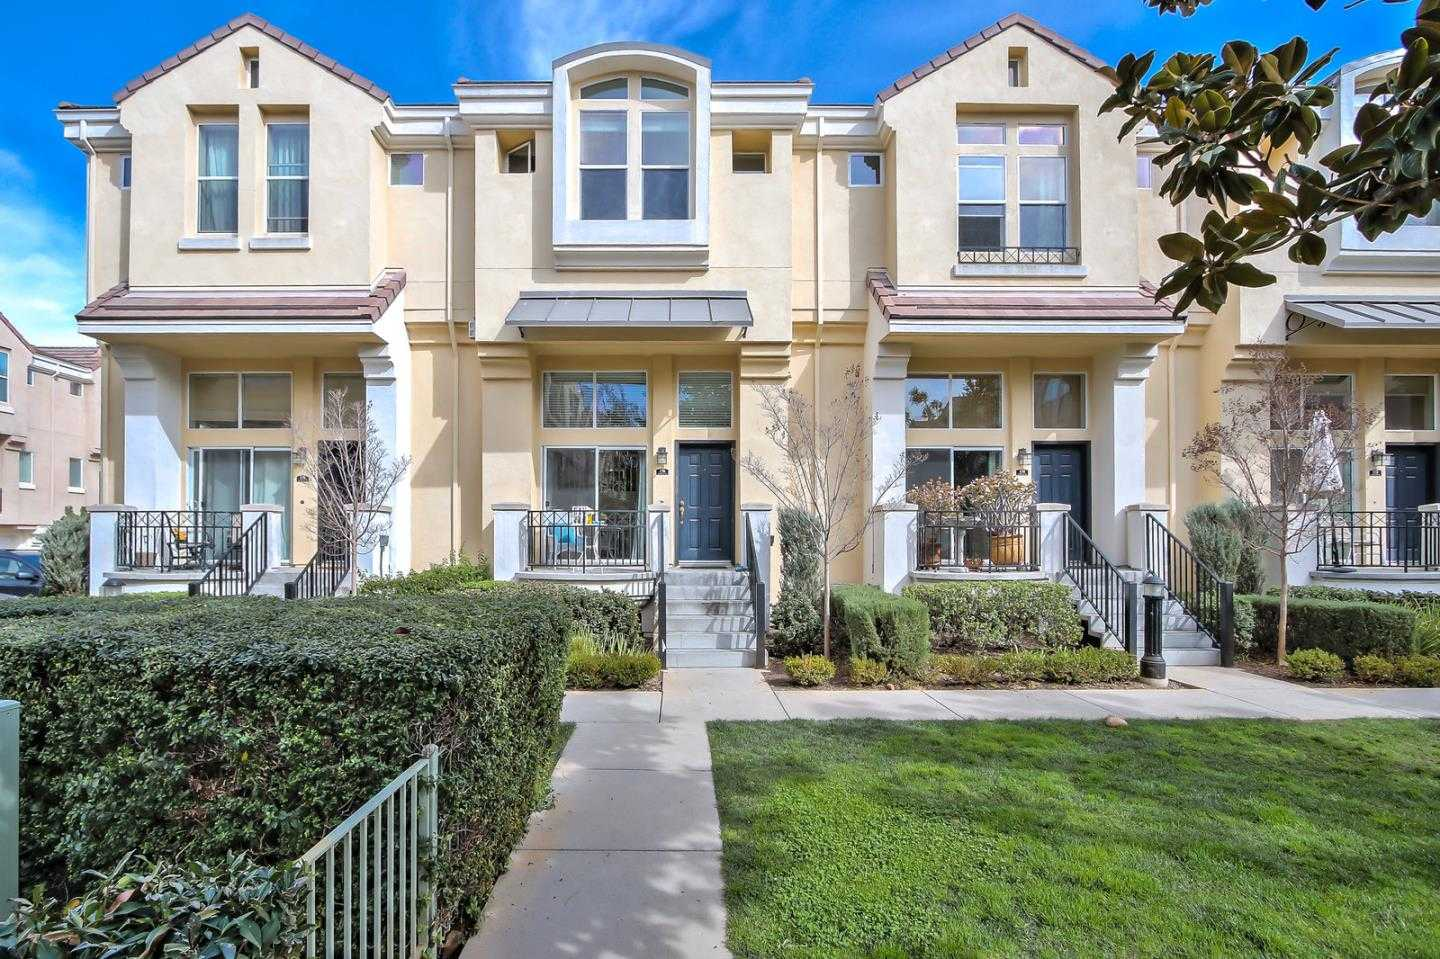 $1,399,000 - 3Br/3Ba -  for Sale in Mountain View